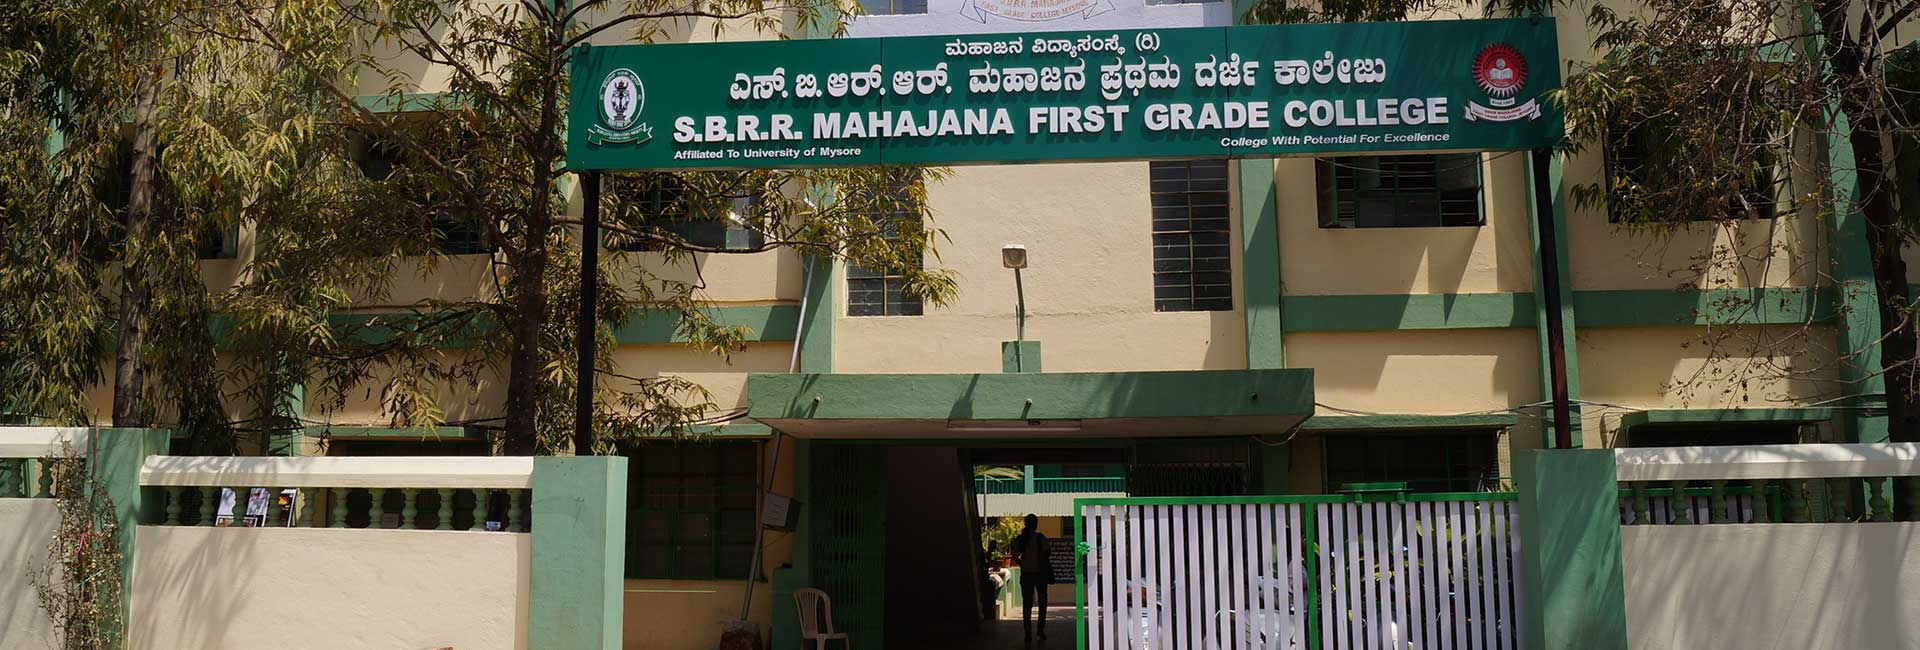 College-Front-Gate